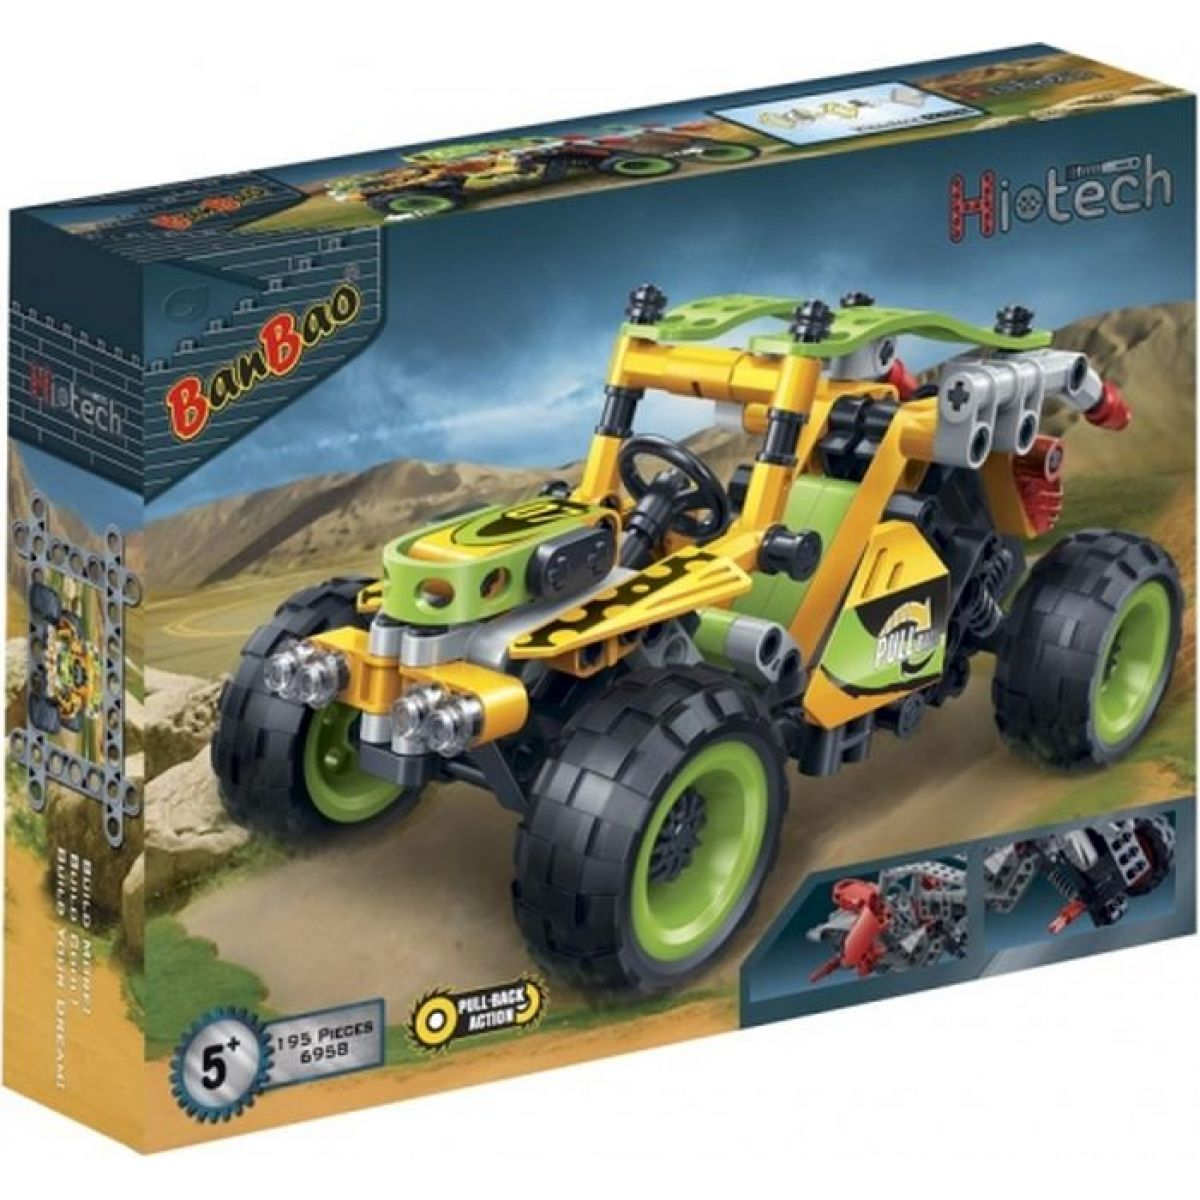 Banbao Hi-Tech 6958 Buggy racing 07